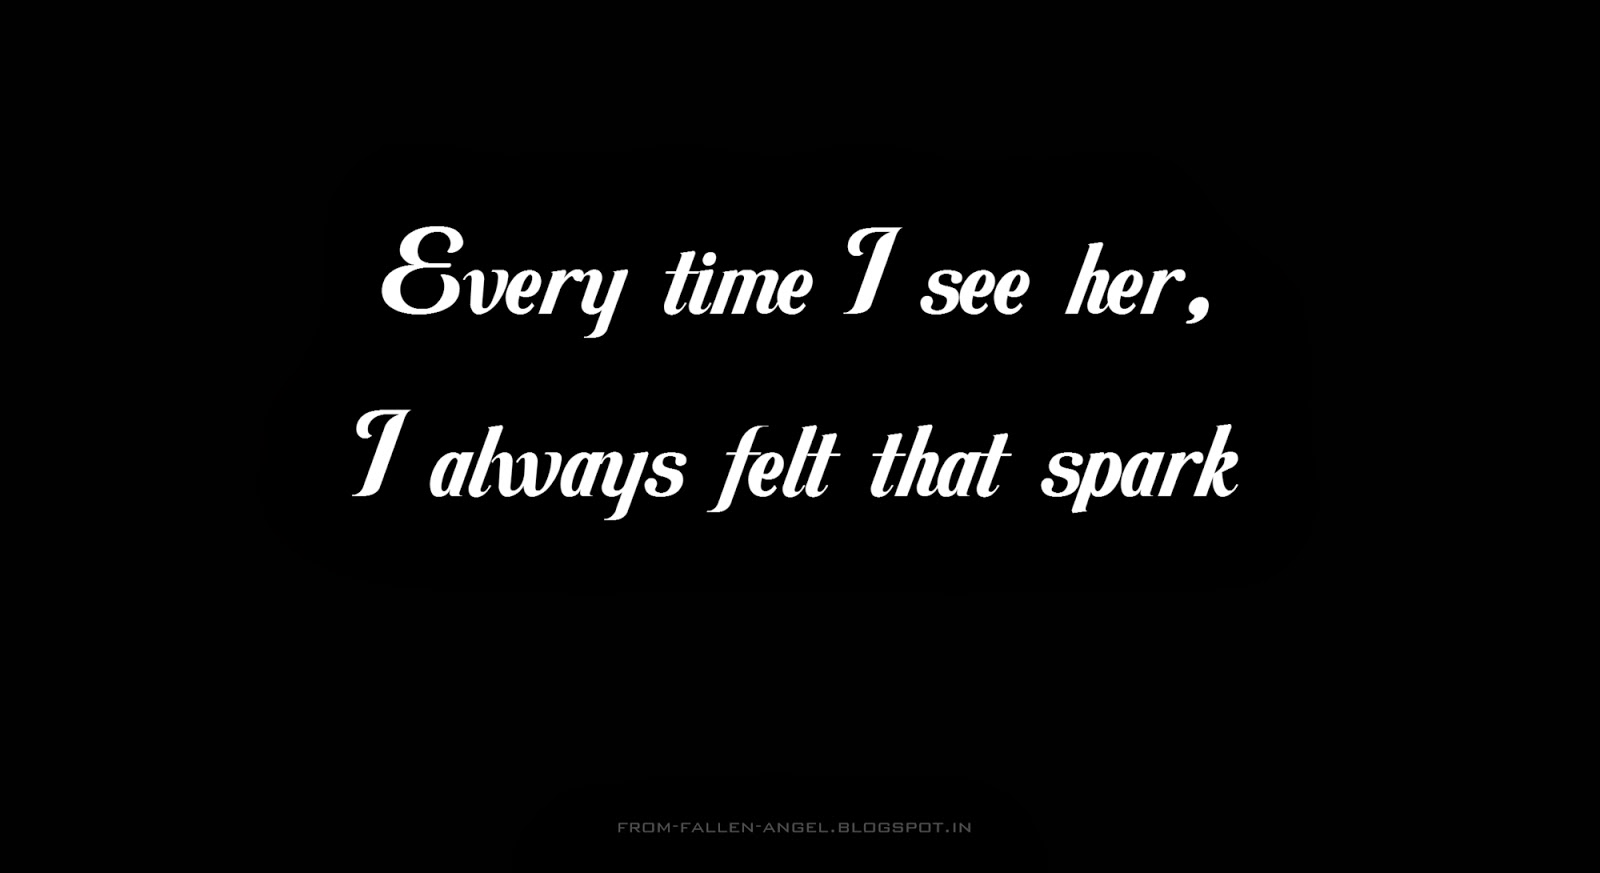 Every time I see her, I always felt that spark